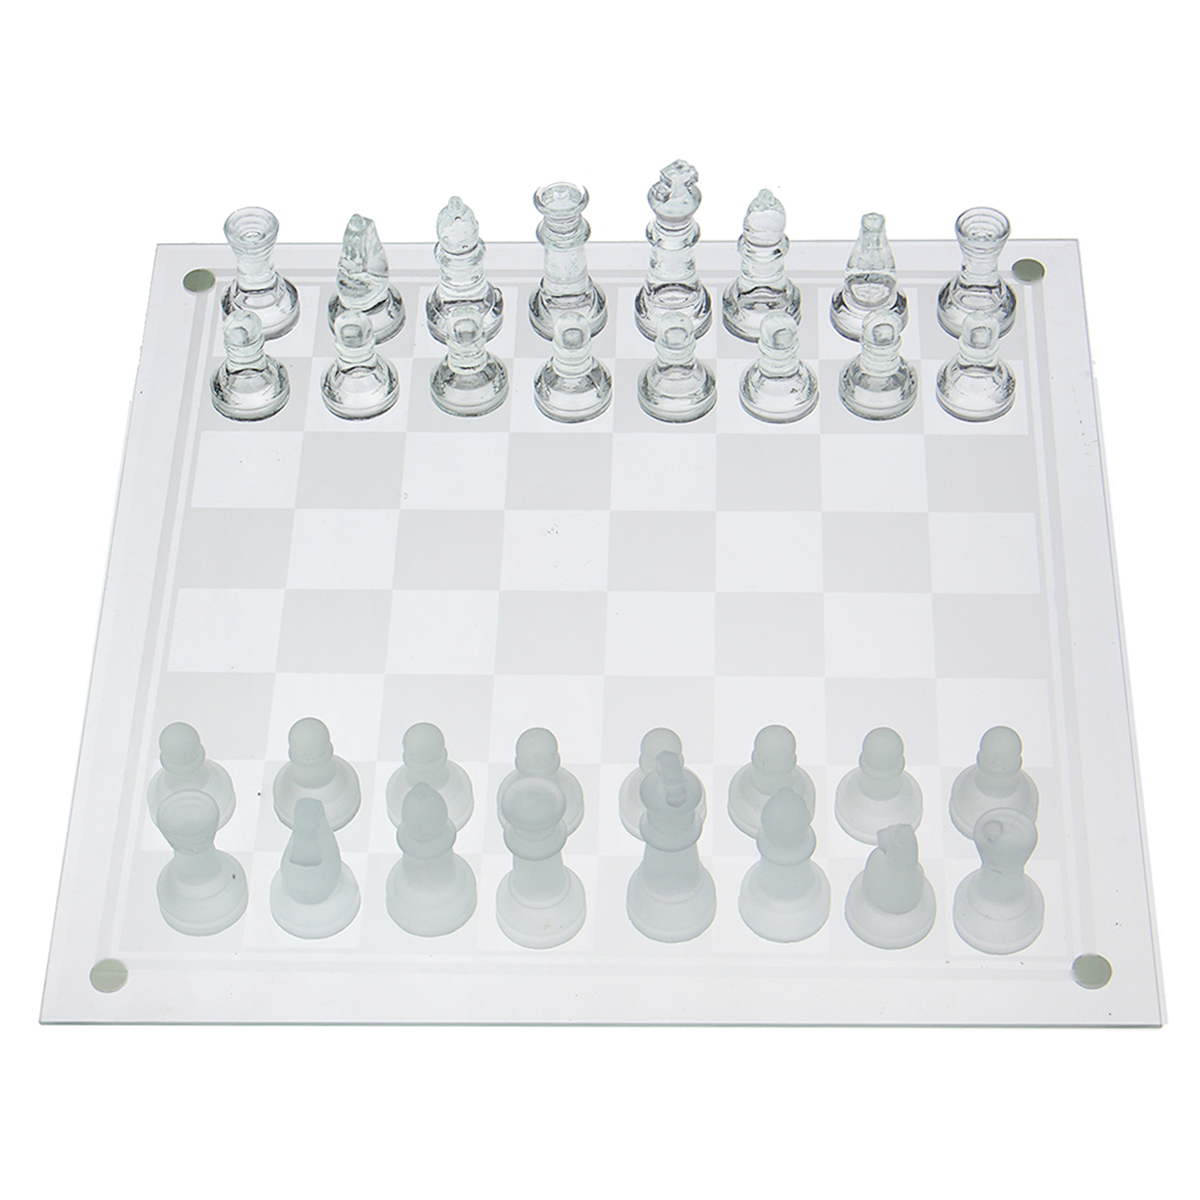 Classic Glass Chess Set Deluxe Checkers Game Strategy Board Frosted Pieces International Word Chess Game Entertainment classic wooden quarto board game 2 players to play funny party games strategy chess game puzzle game